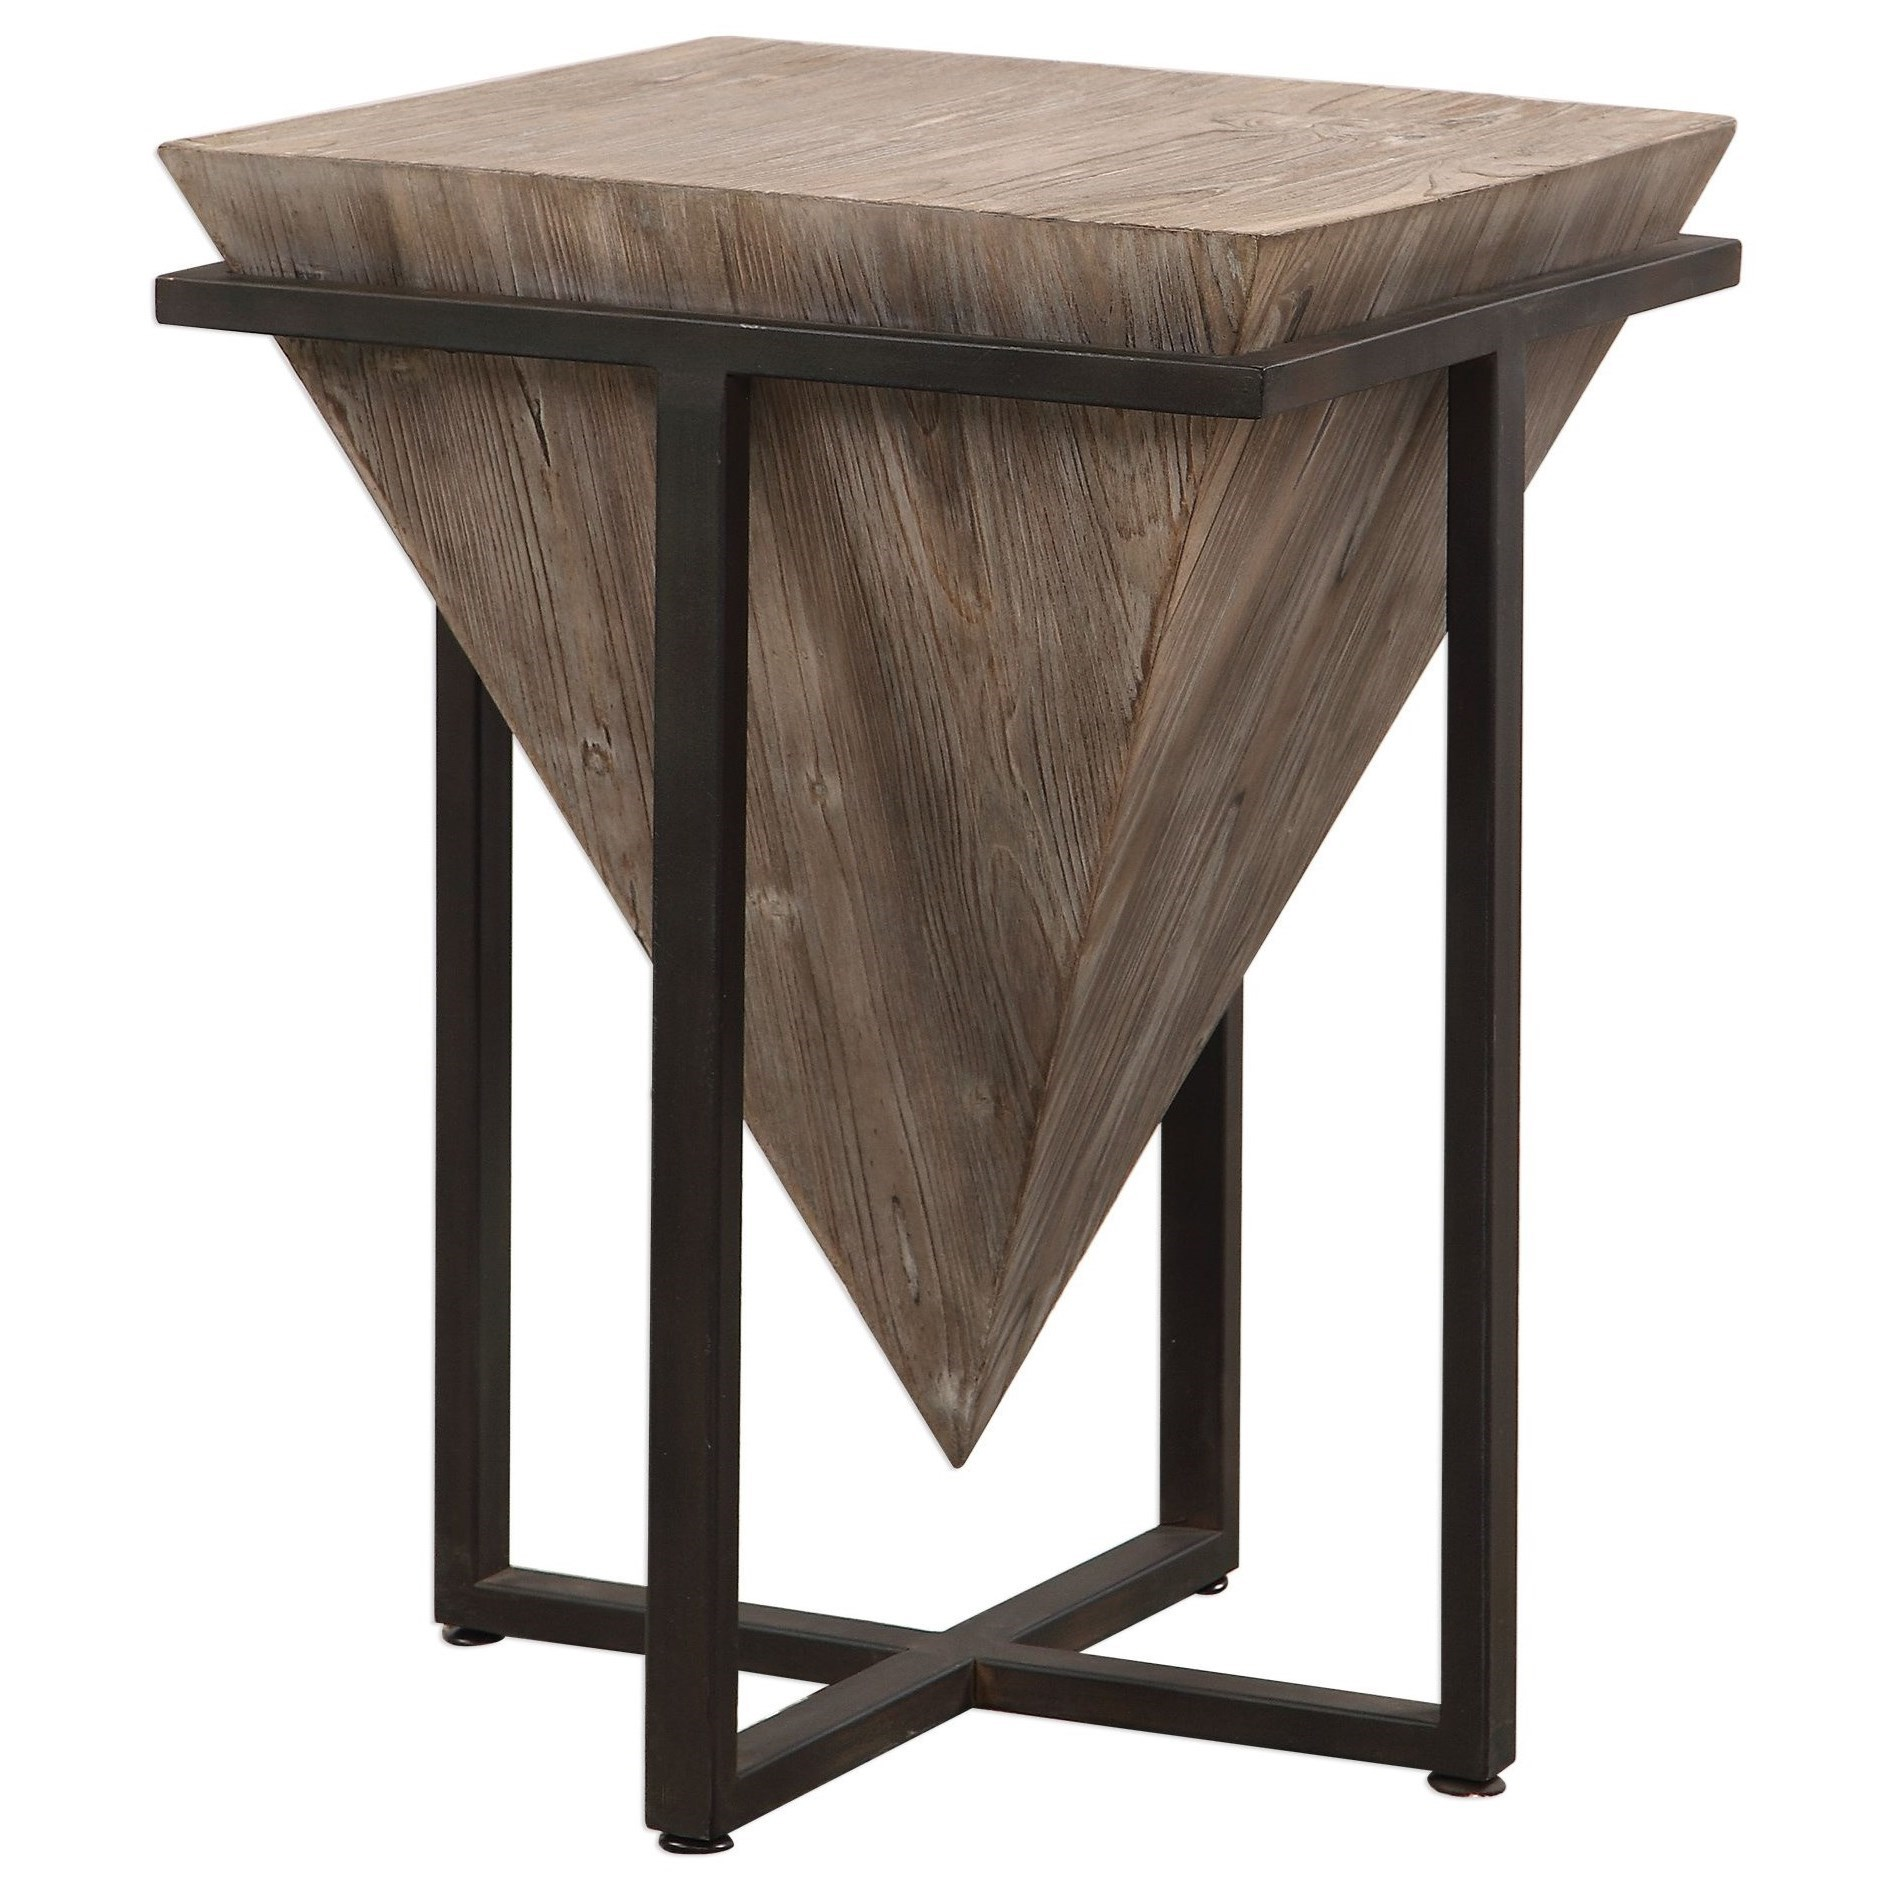 Accent Furniture - Occasional Tables Bertrand Wood Accent Table by Uttermost at Upper Room Home Furnishings